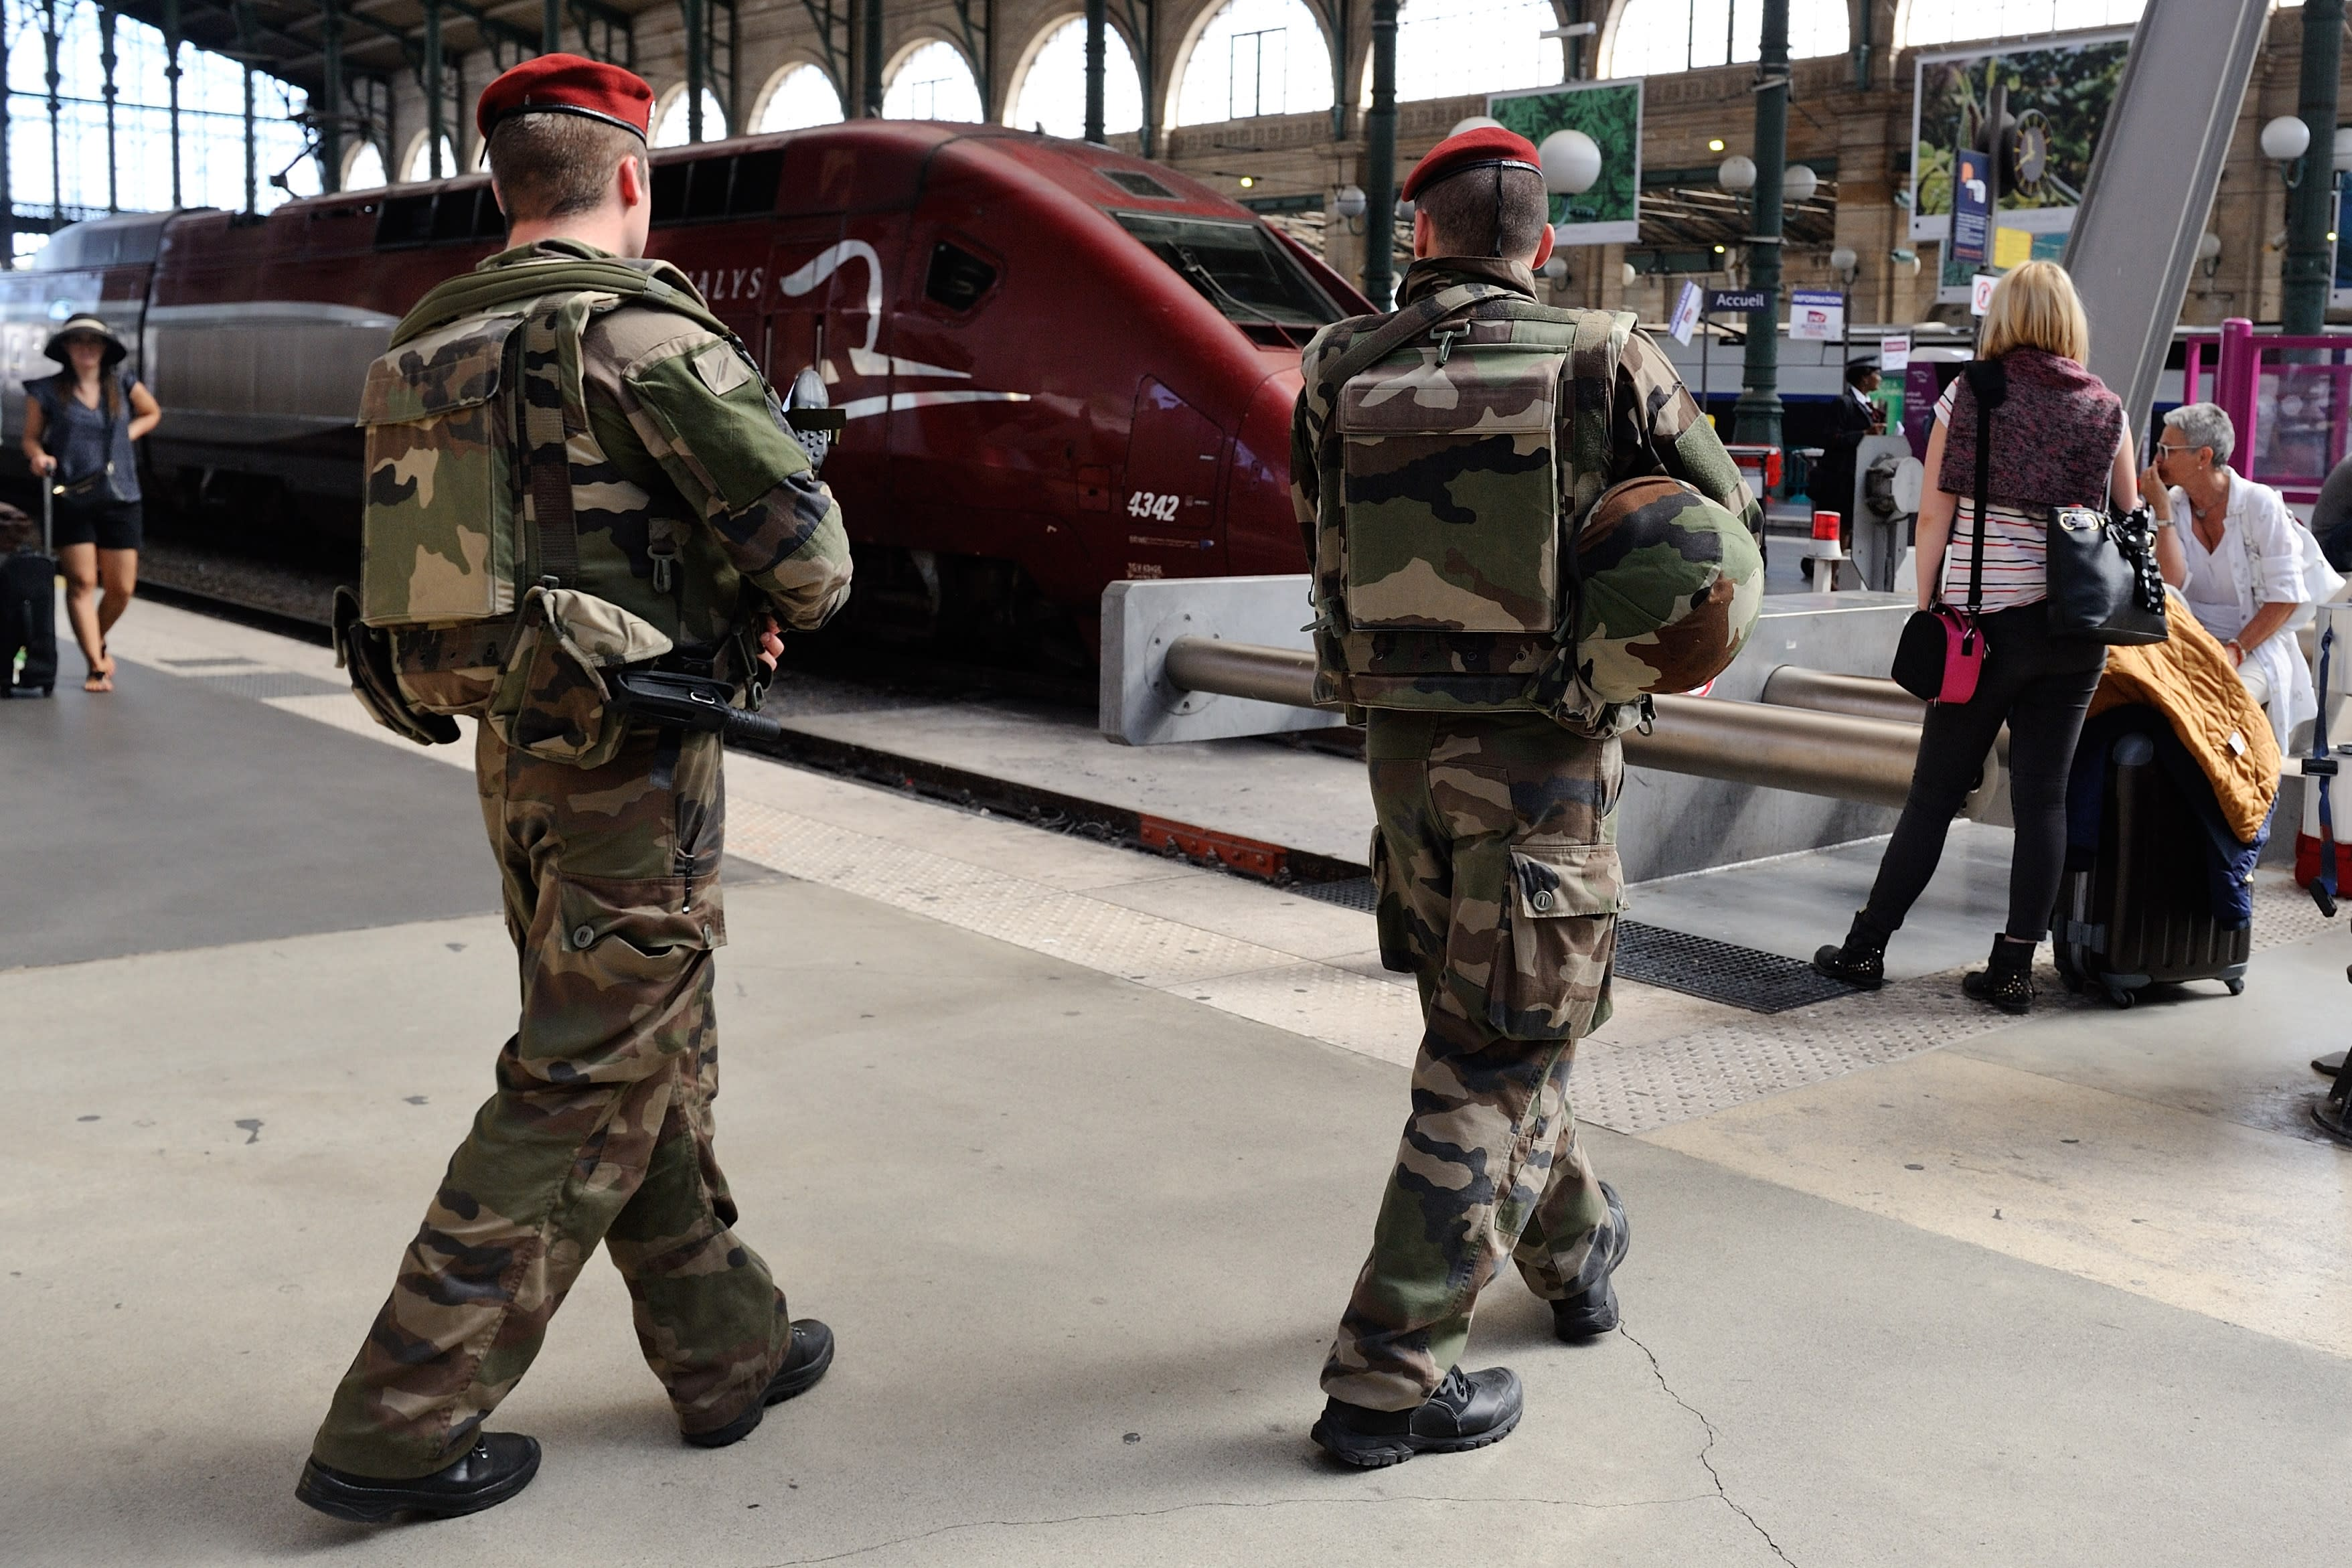 More ID, bag checks on Europe's trains after foiled attack